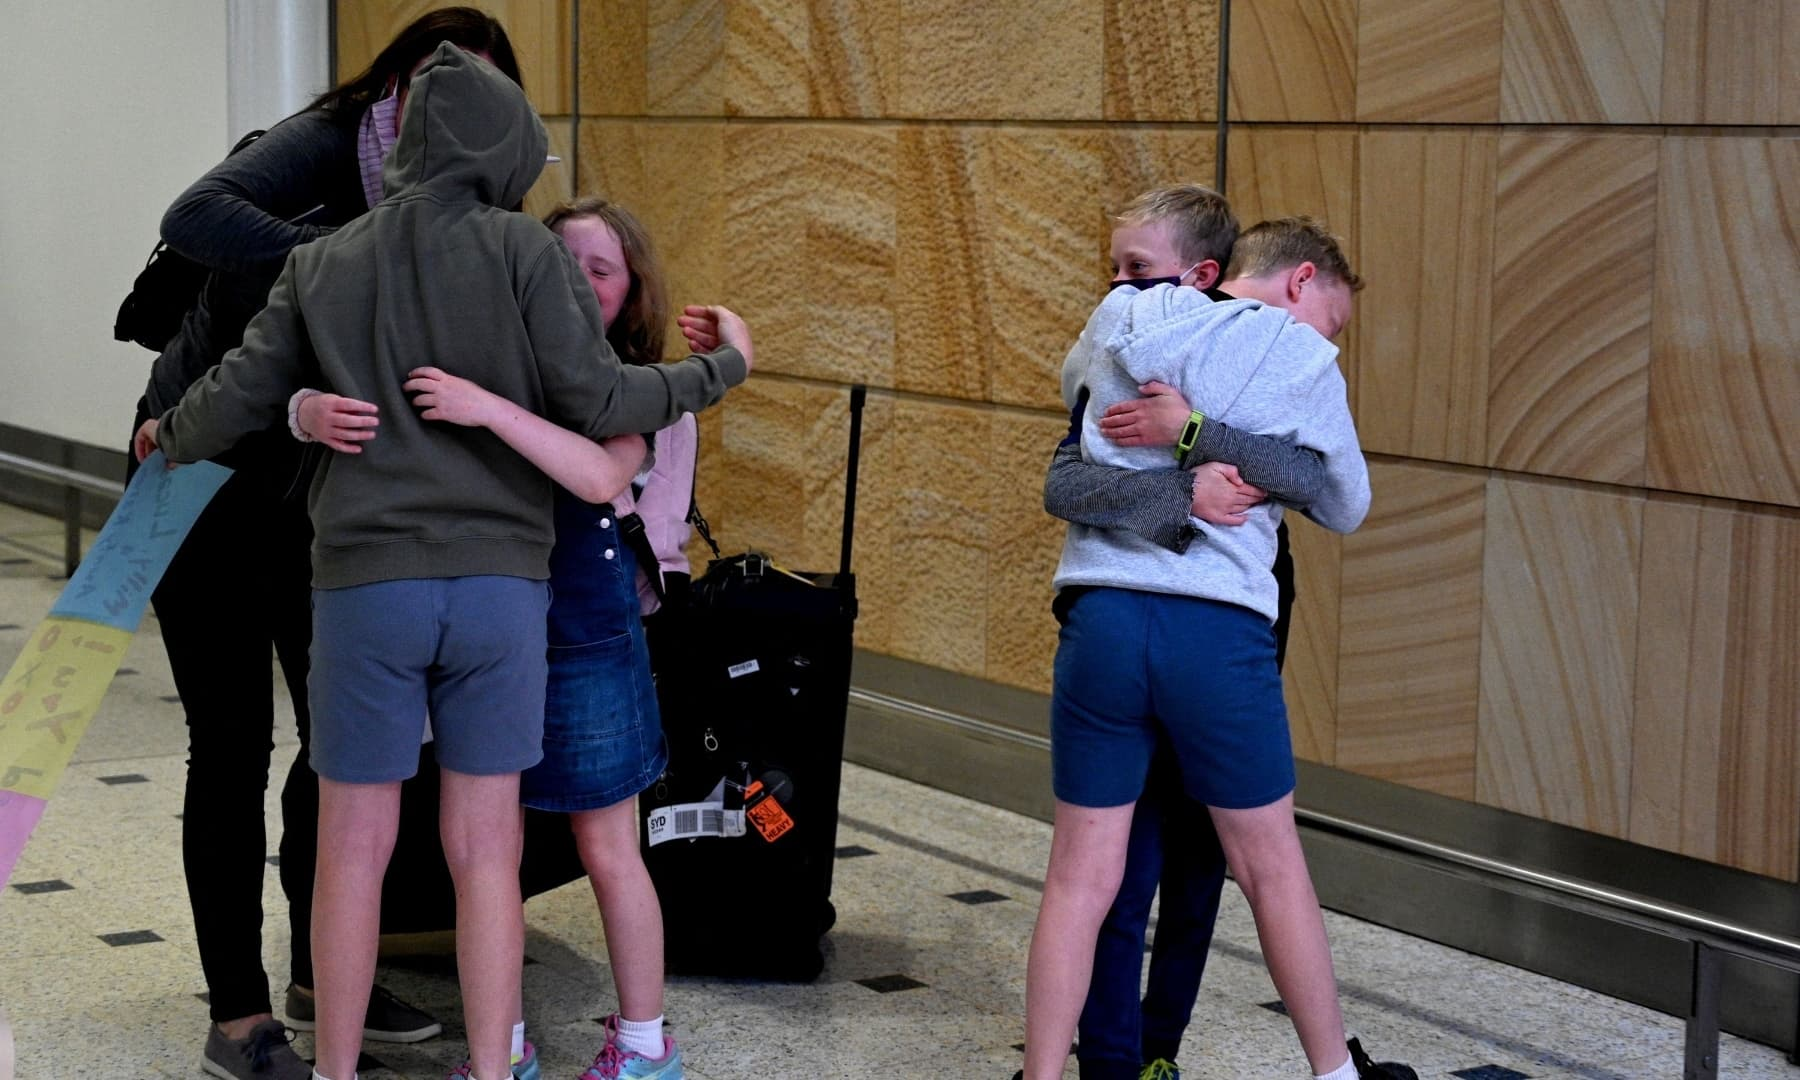 A family reunites upon their arrival from New Zealand at Sydney International Airport on April 19. — AFP